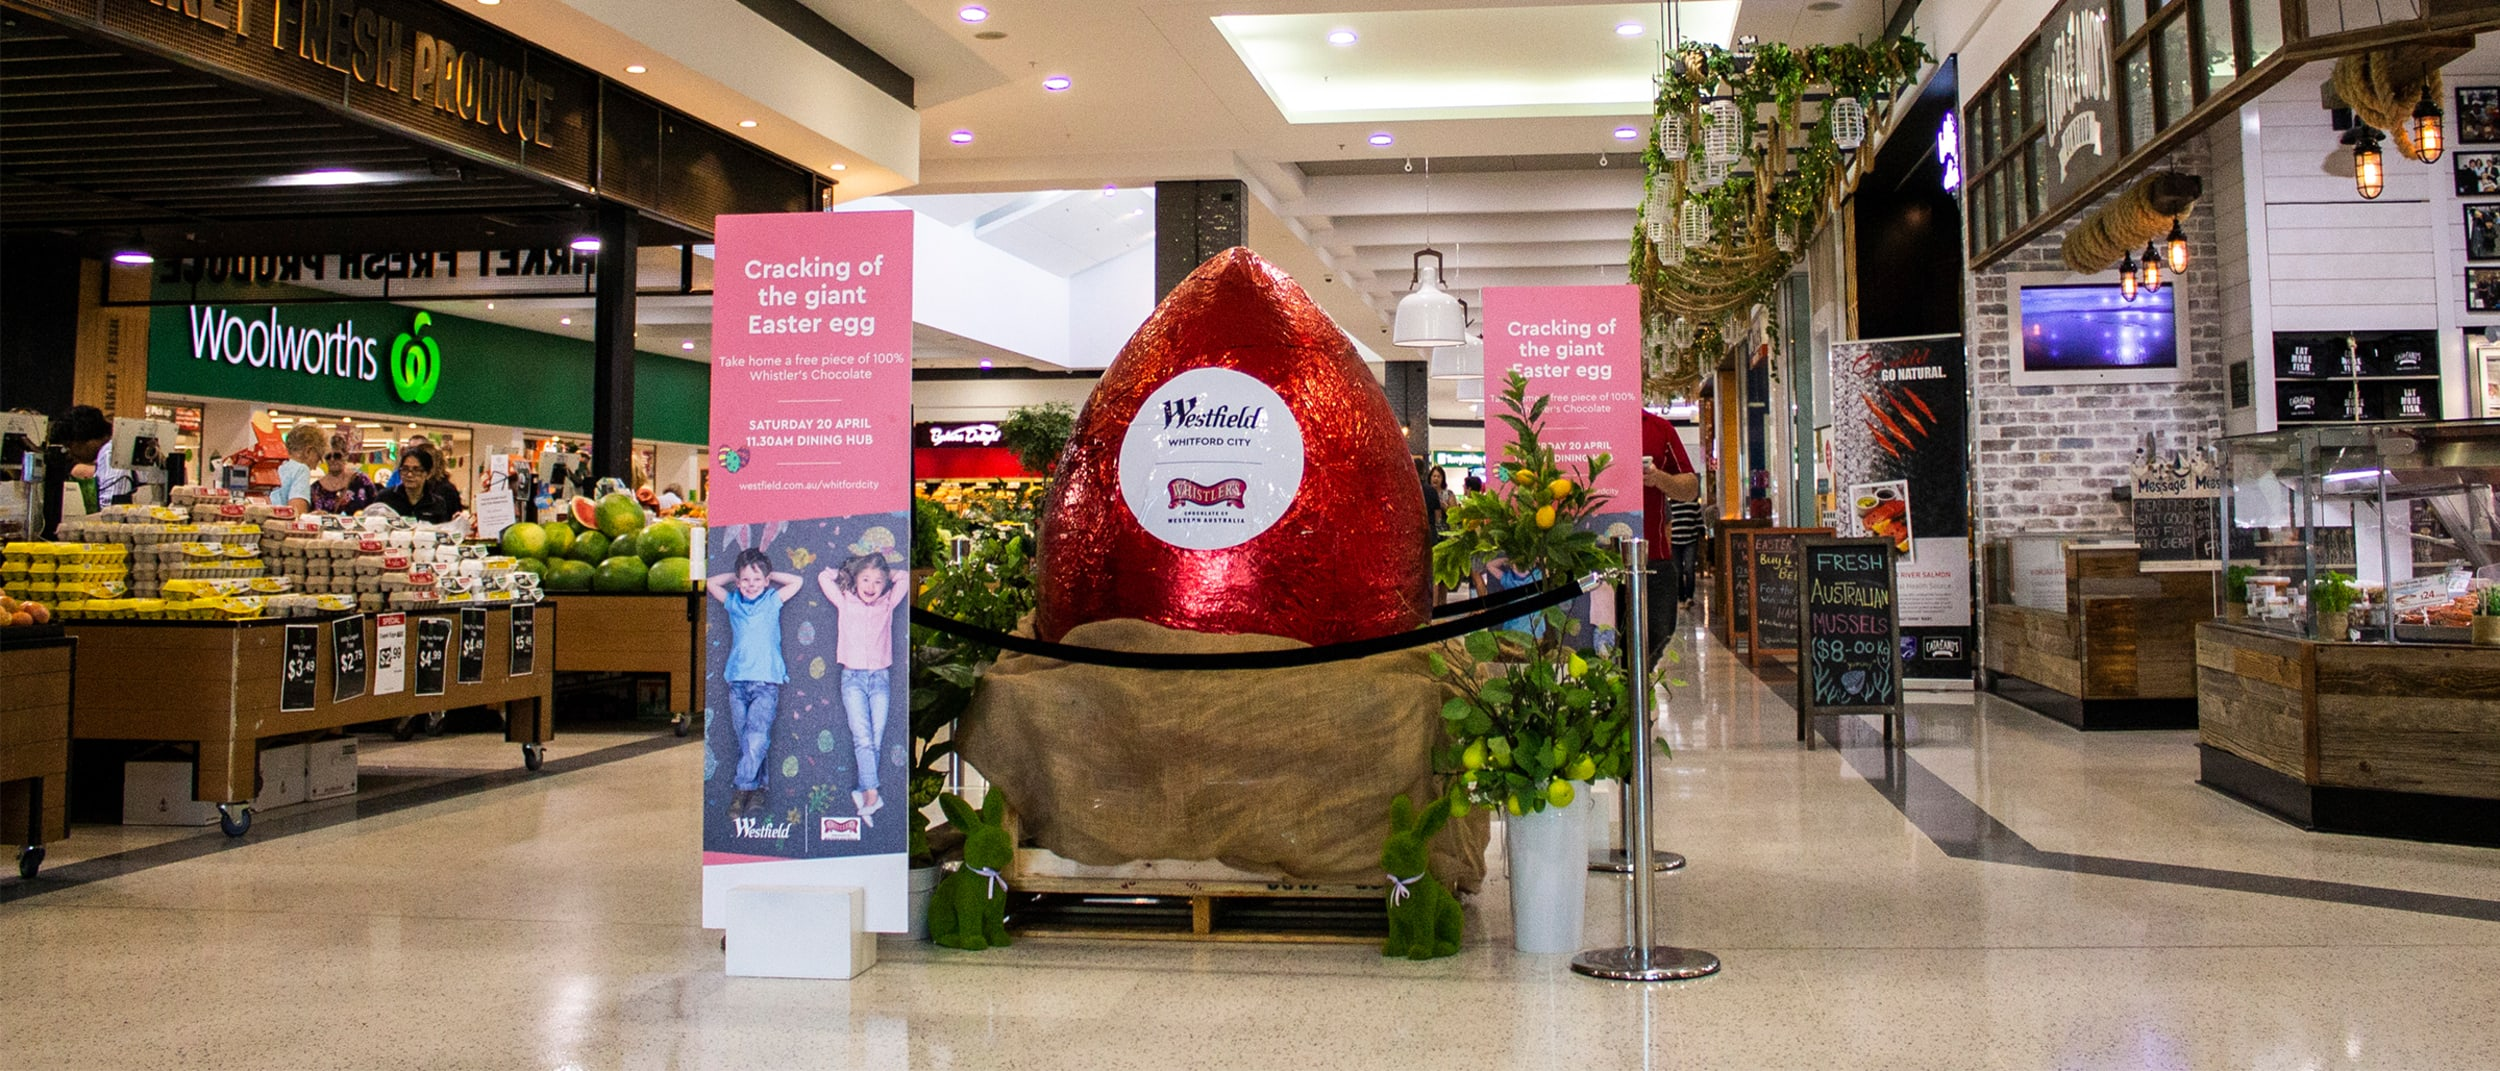 Witness the cracking of a giant Whistler's Chocolate egg